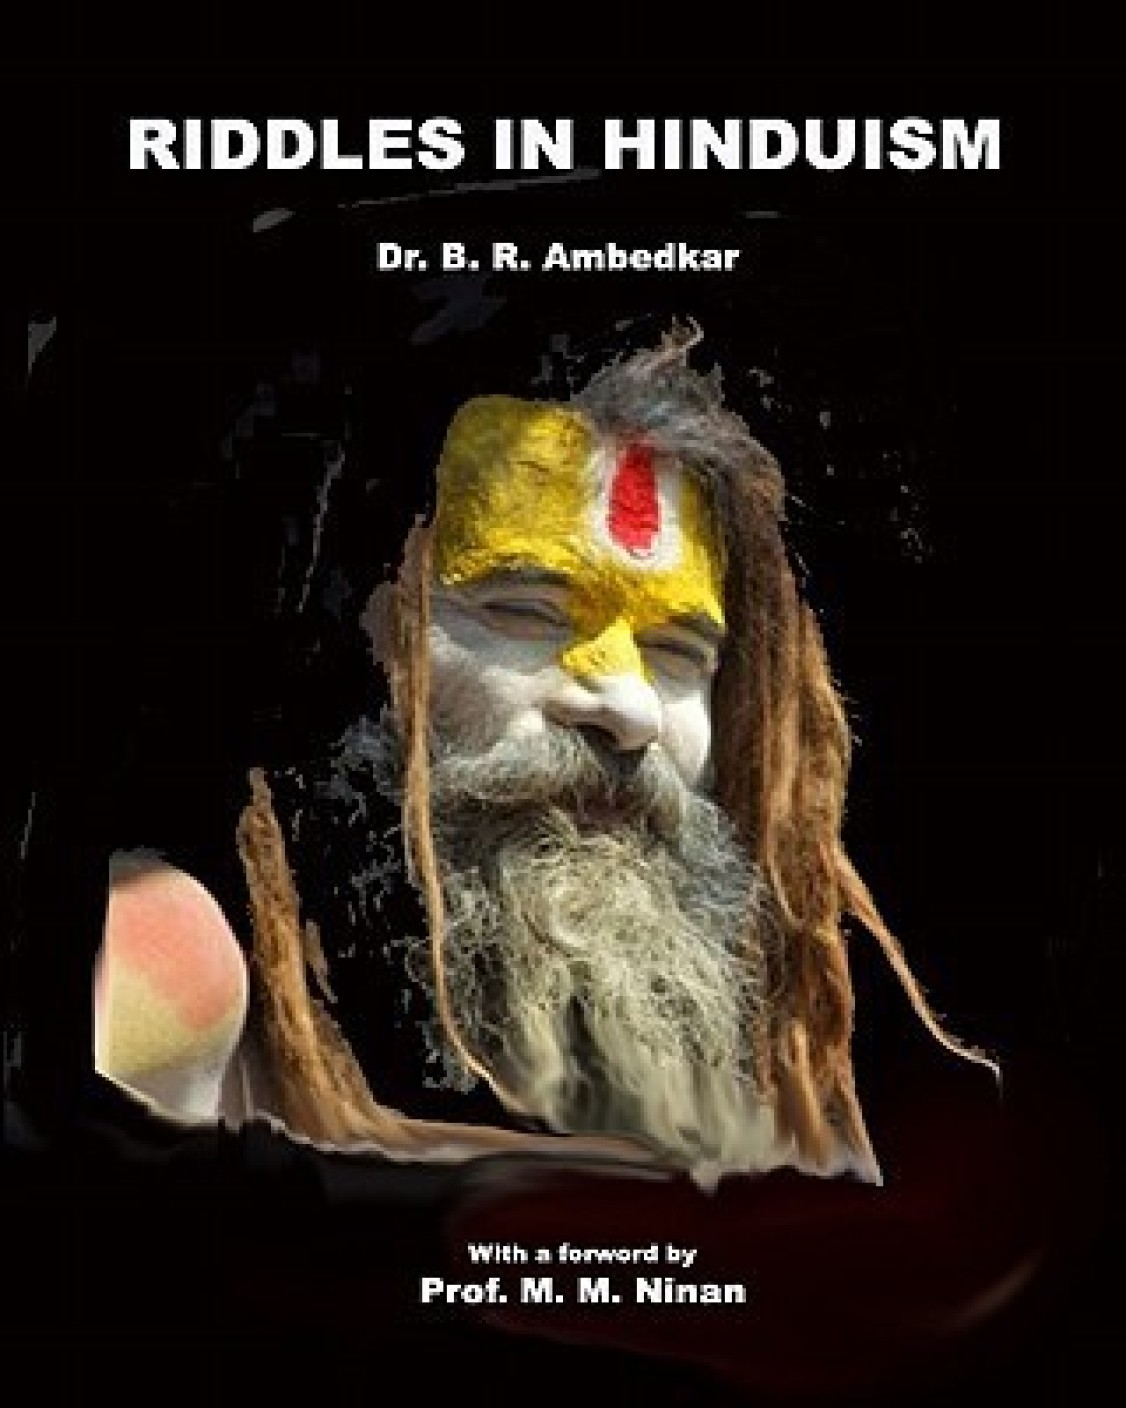 riddles in hinduism original imaeajw7avr5mhjz